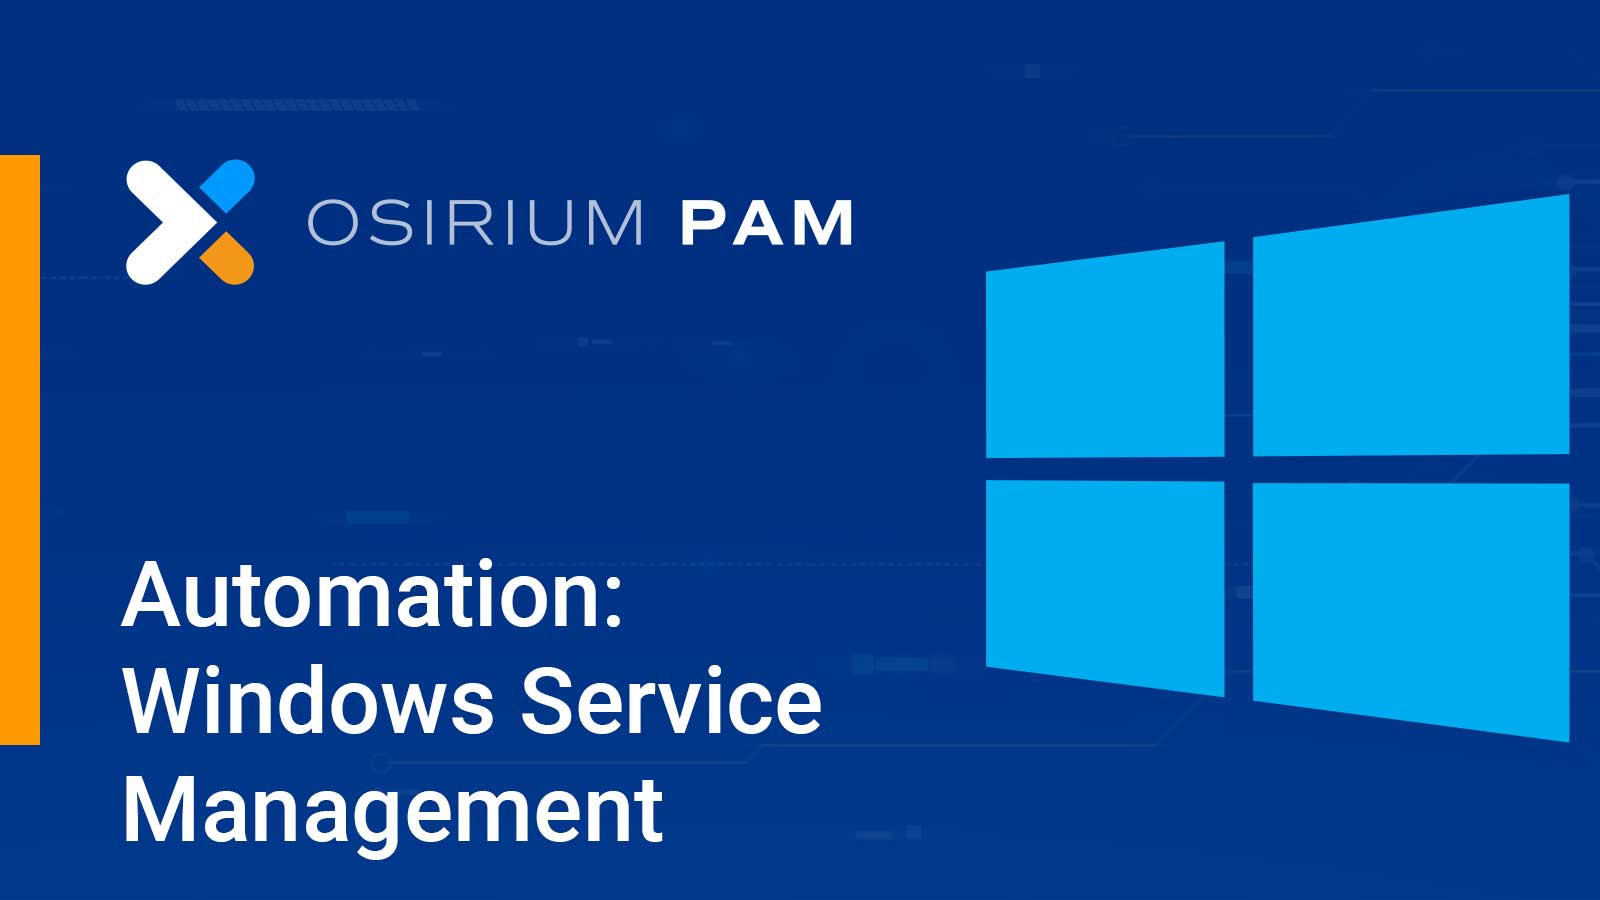 Osirium PAM and Automation - Windows Service Management